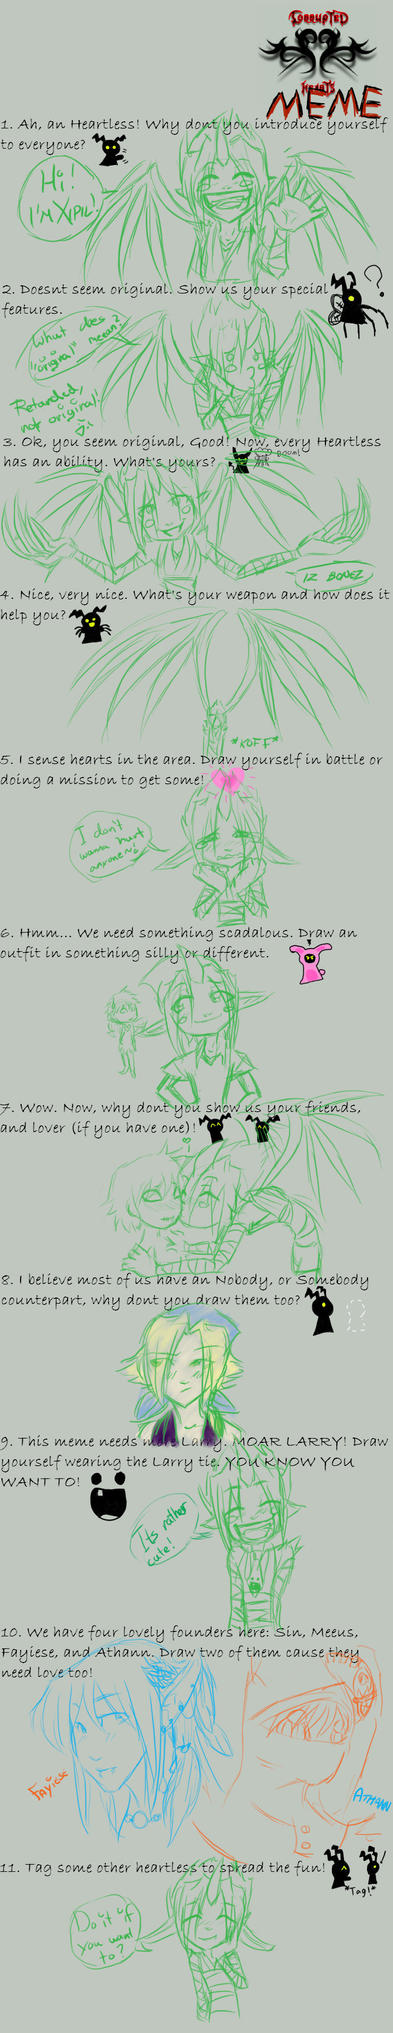 Corrupted Hearts meme :D by Mystyra